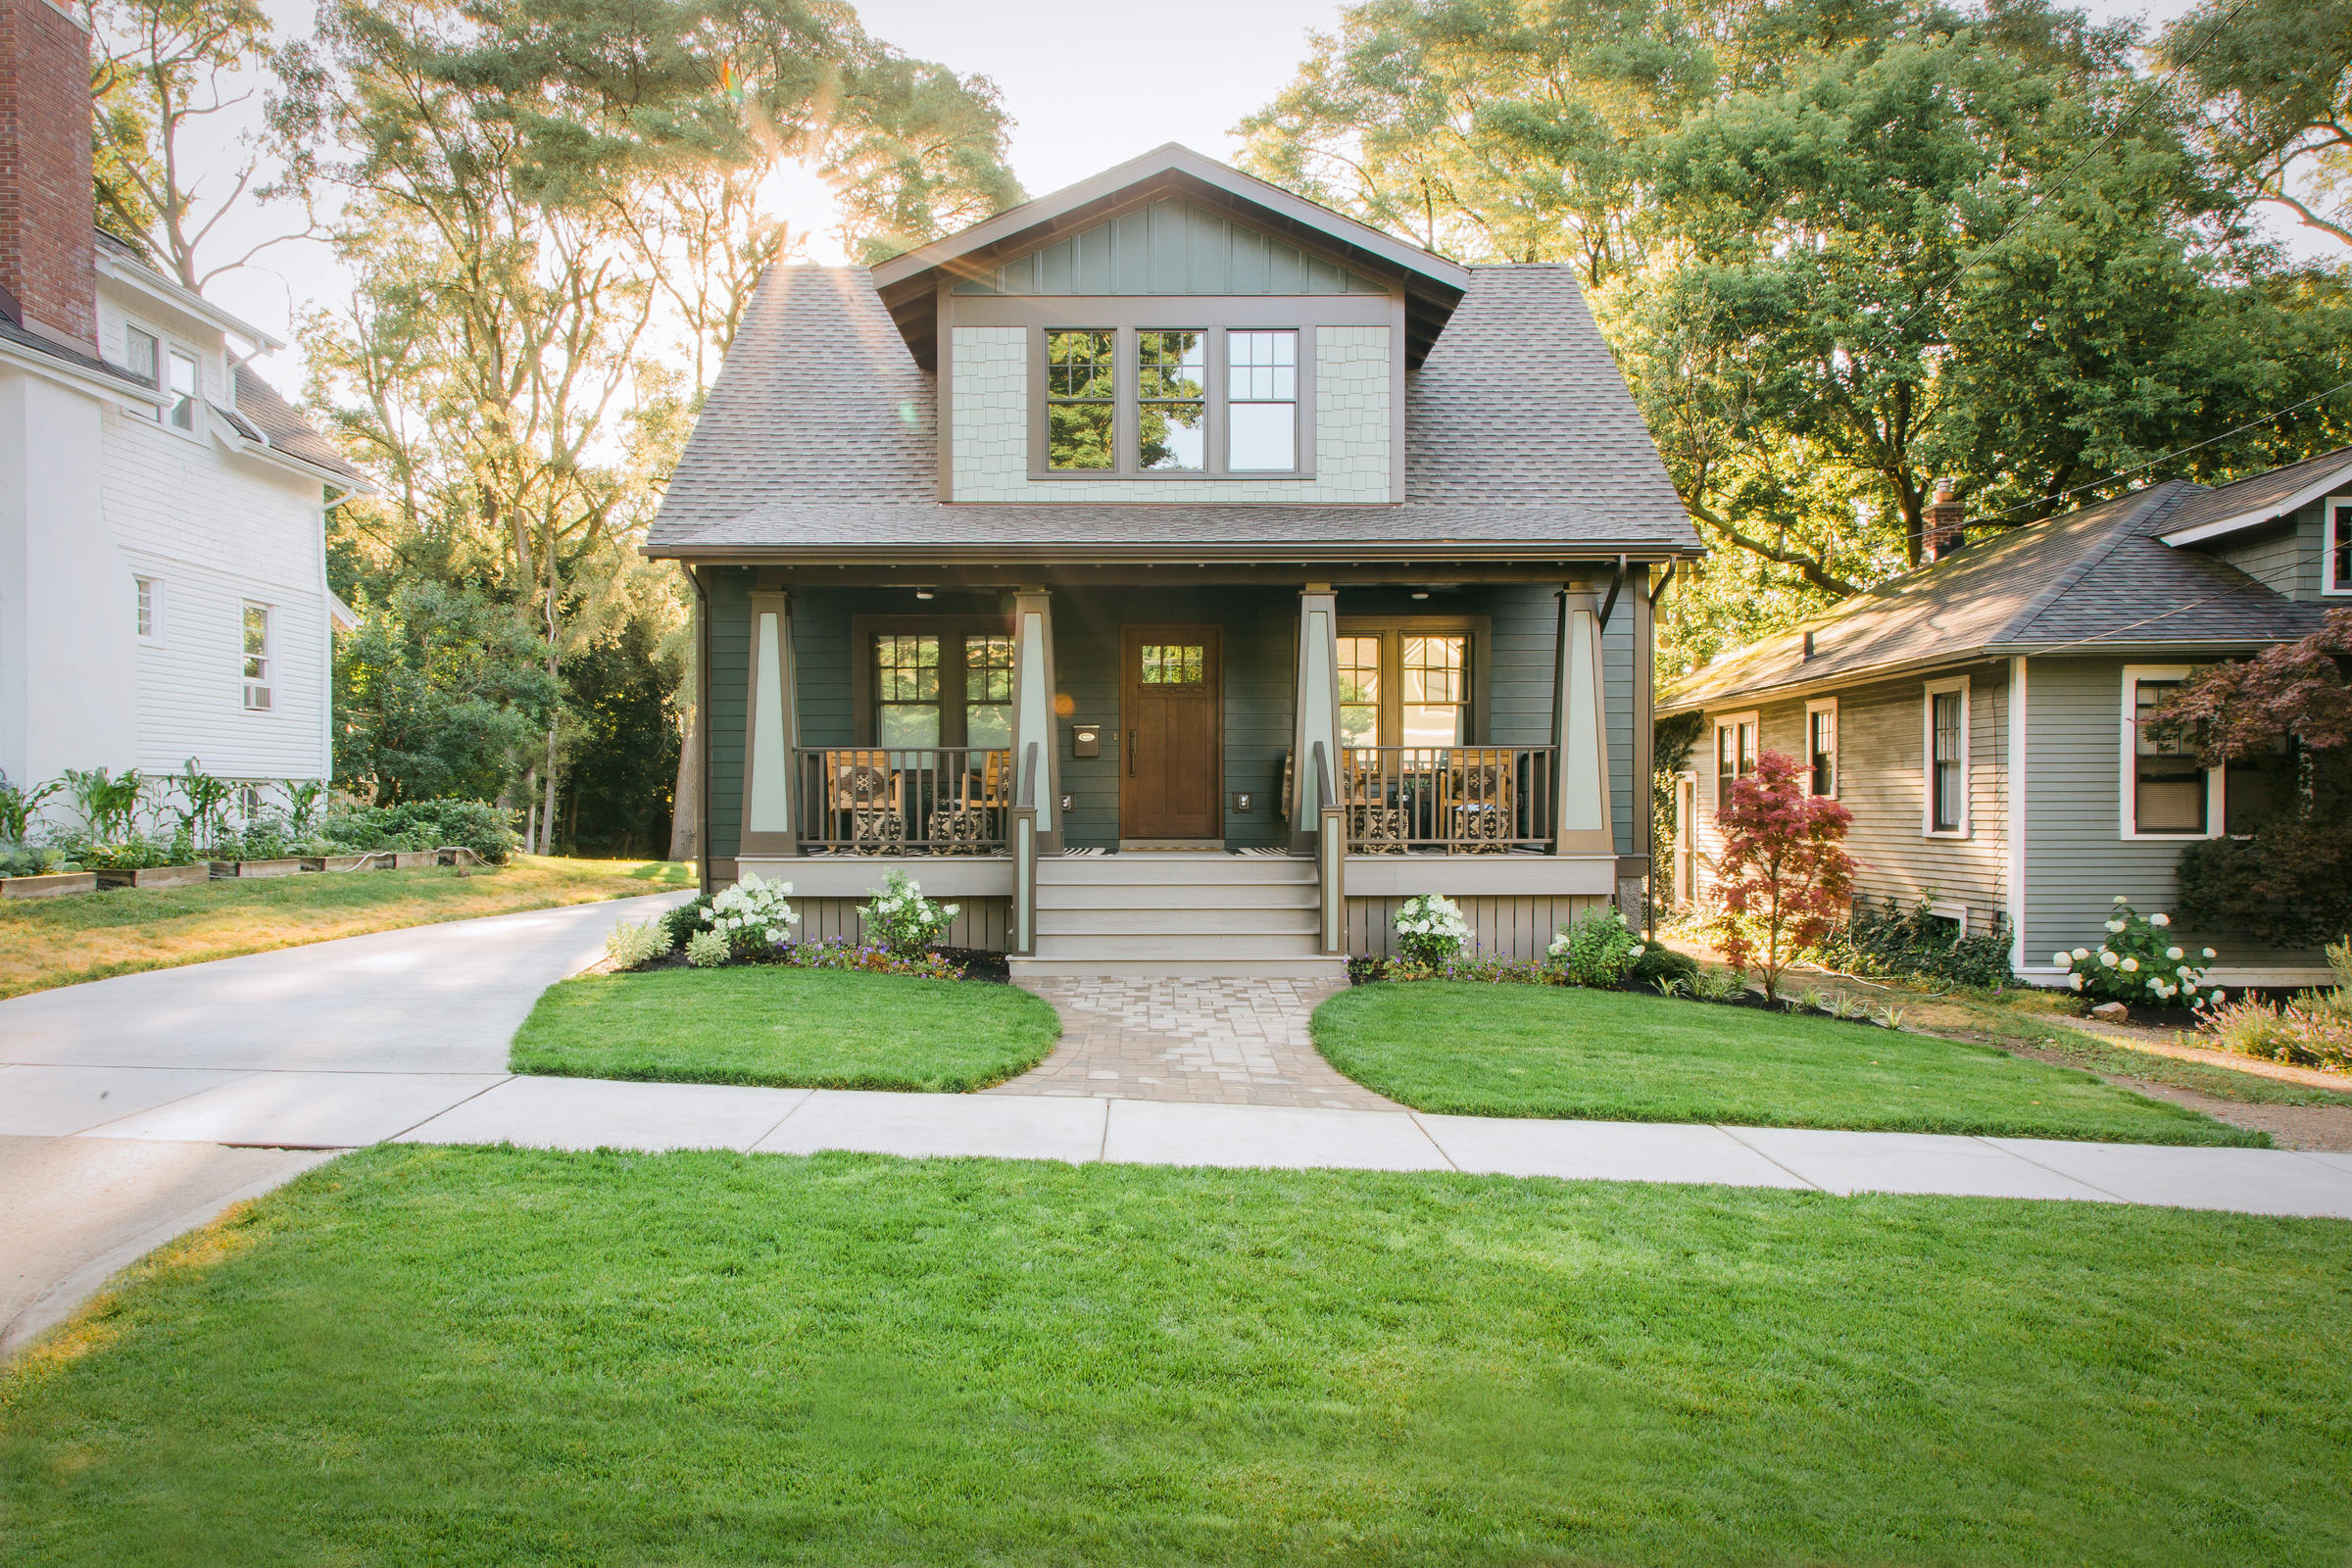 ann arbor home is the grand prize in hgtv's urban oasis